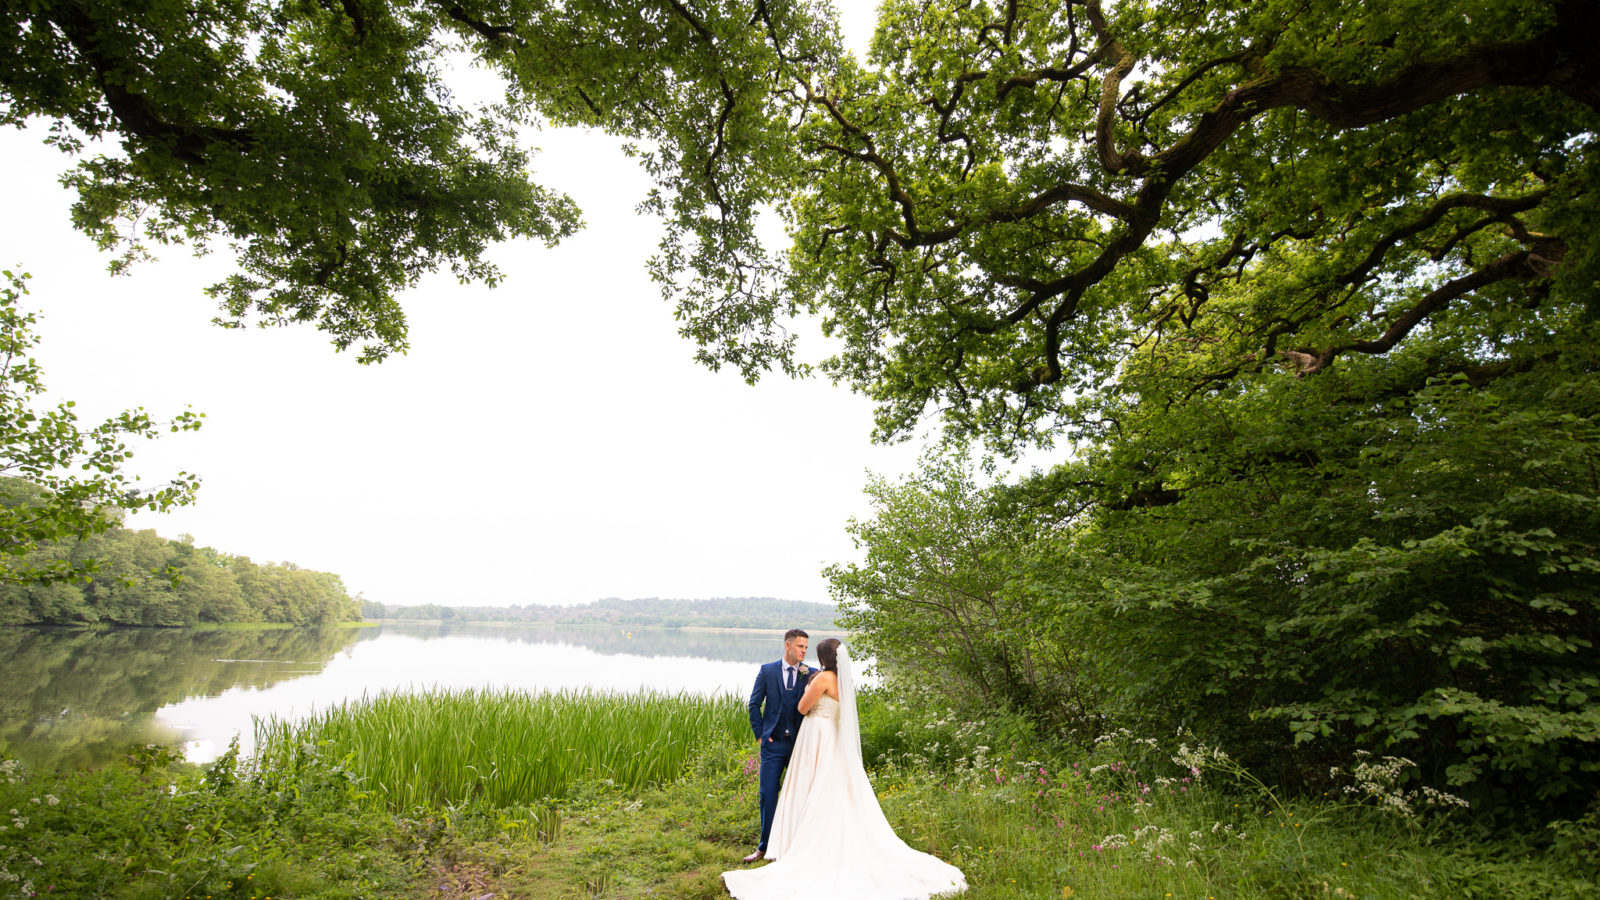 A couple by the lake at Shearwater in Wiltshire